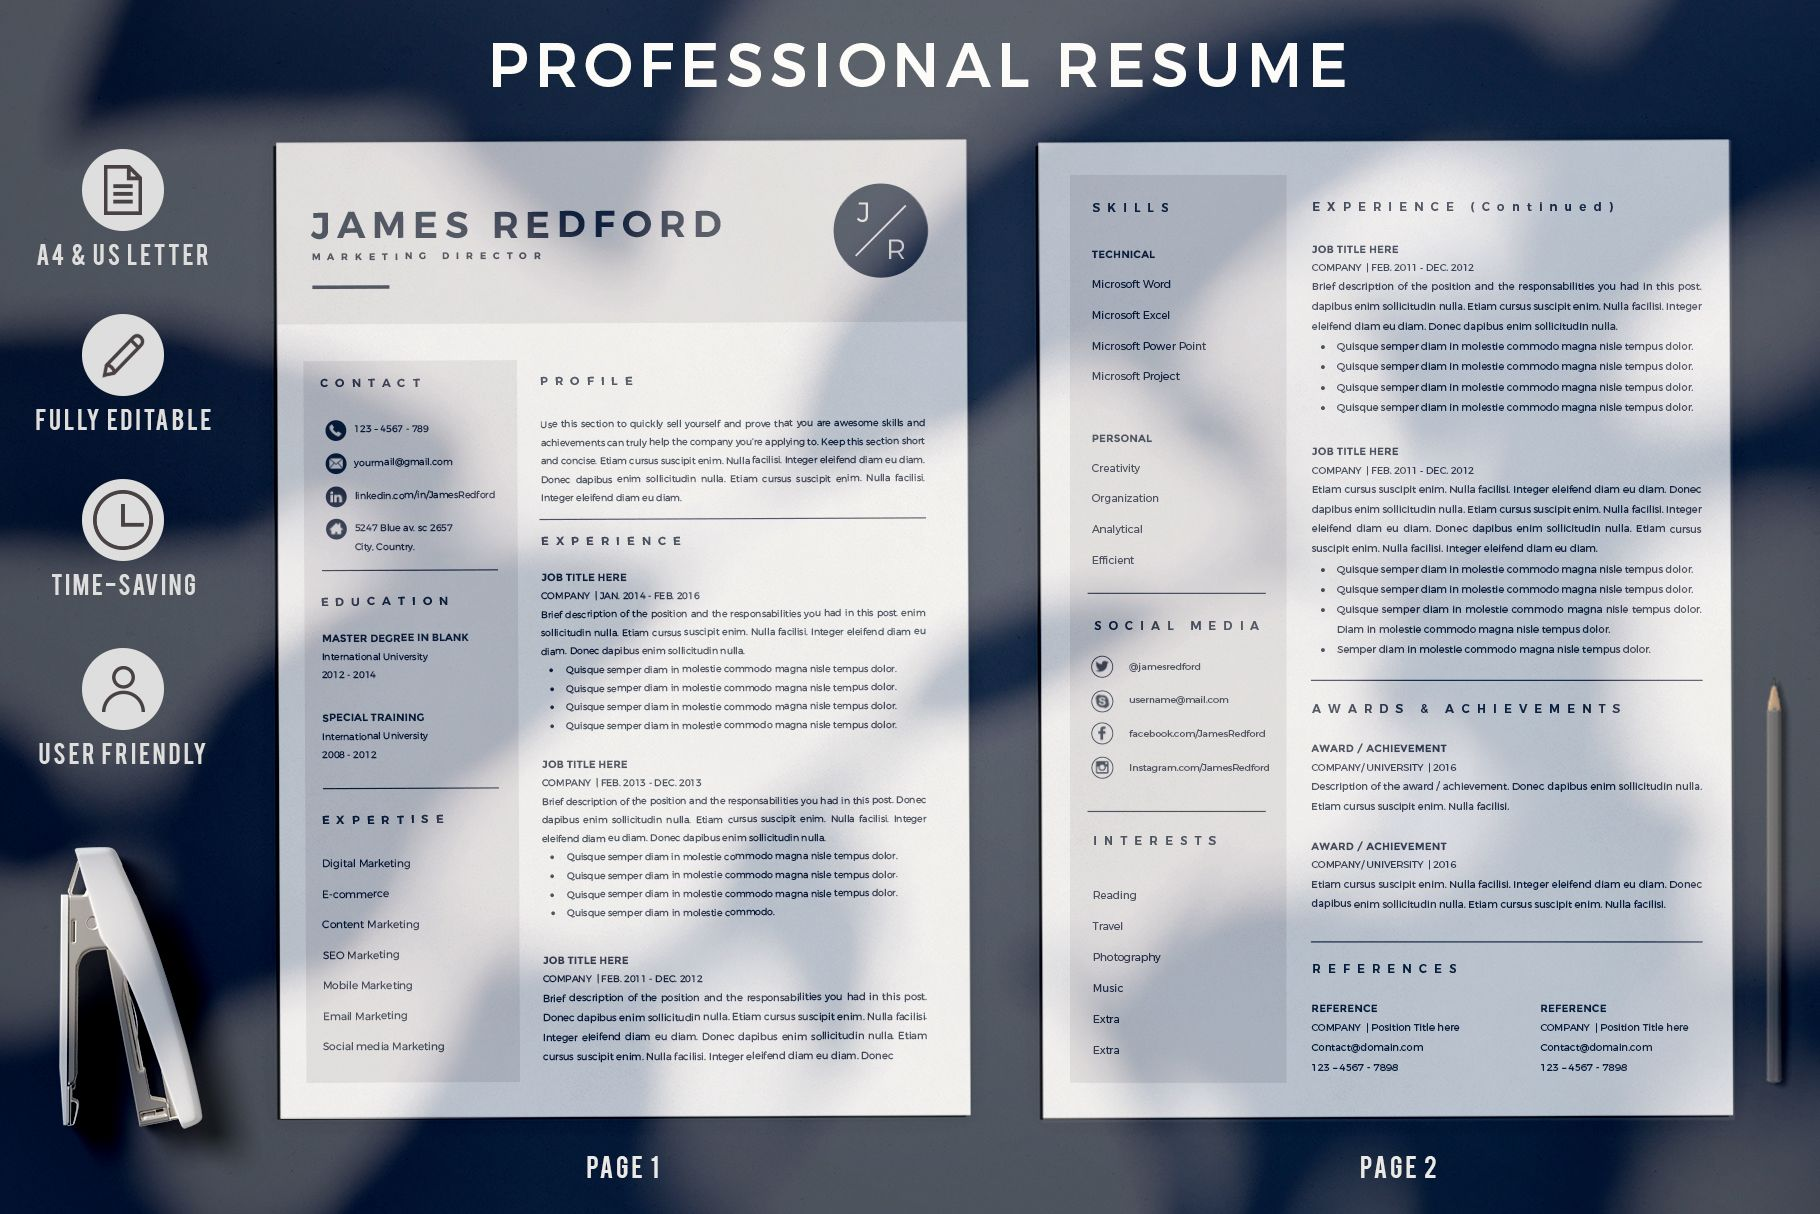 Creative Resume Templates For Ms Word And Mac Pages Professional Resume Templates And Marketing Resume Resume Template Professional Creative Resume Templates